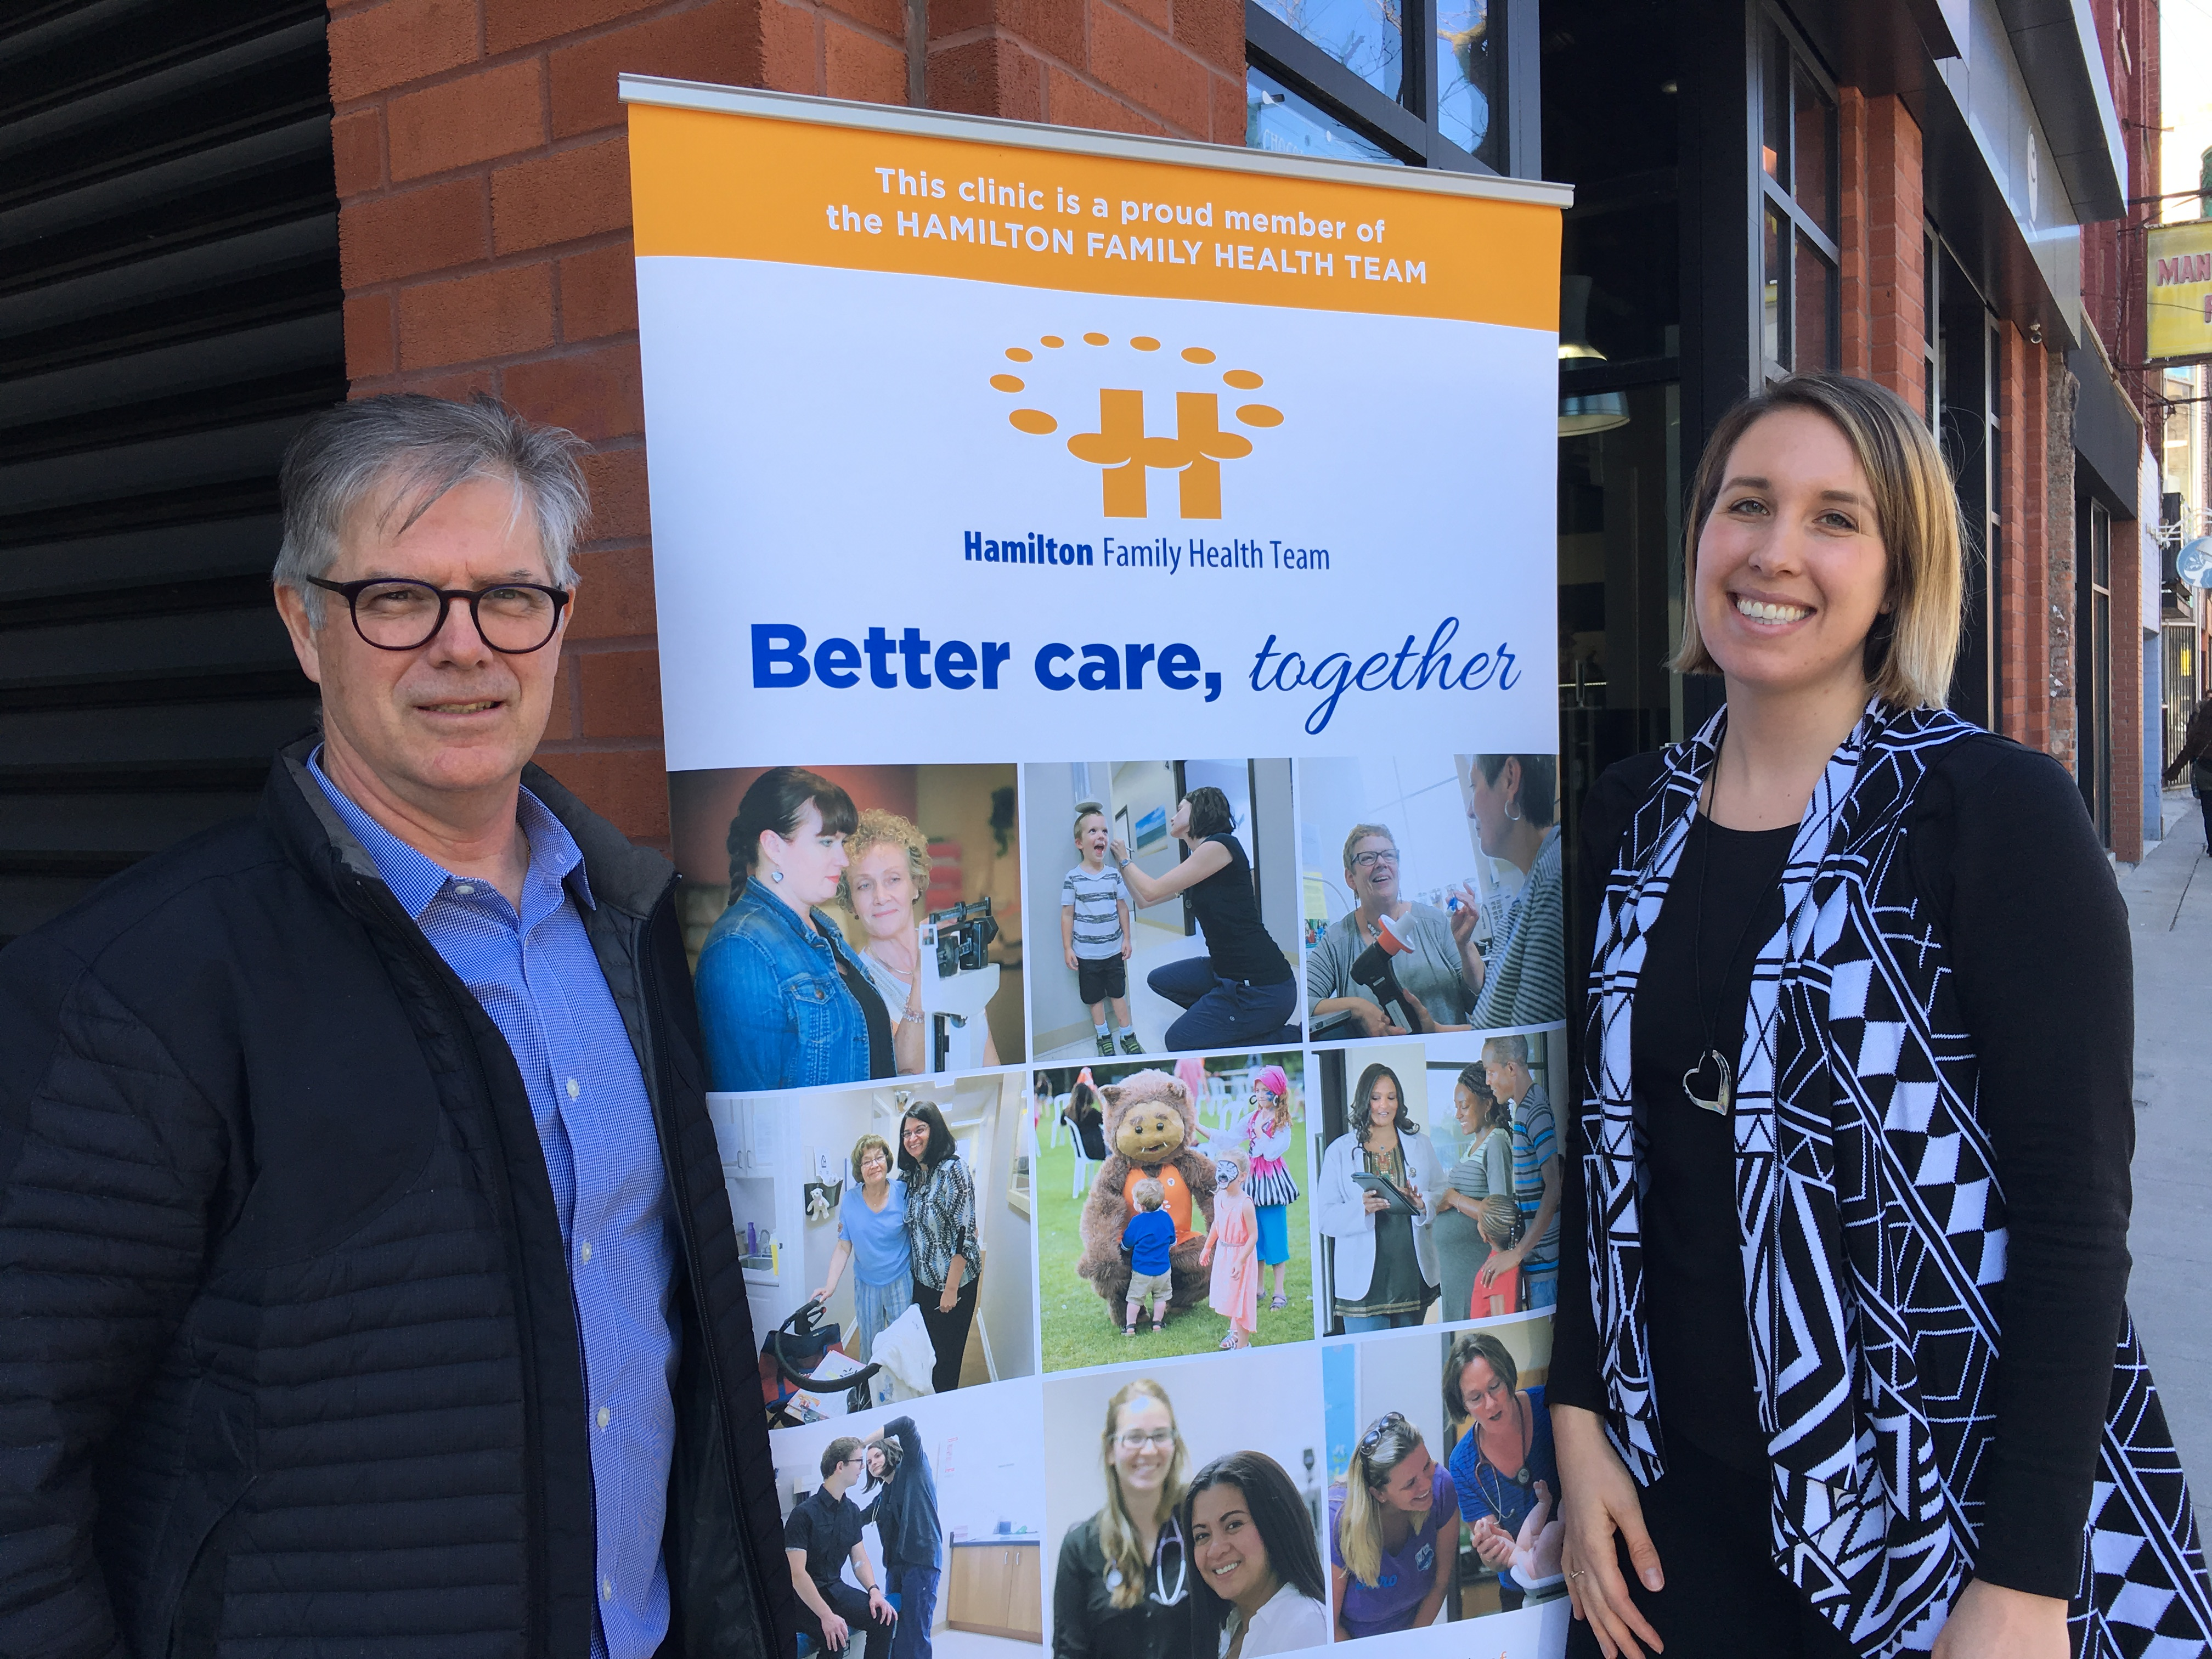 Dr. Michael Pray and Vanessa Foreman, members of the HFHT Choosing Wisely Committee